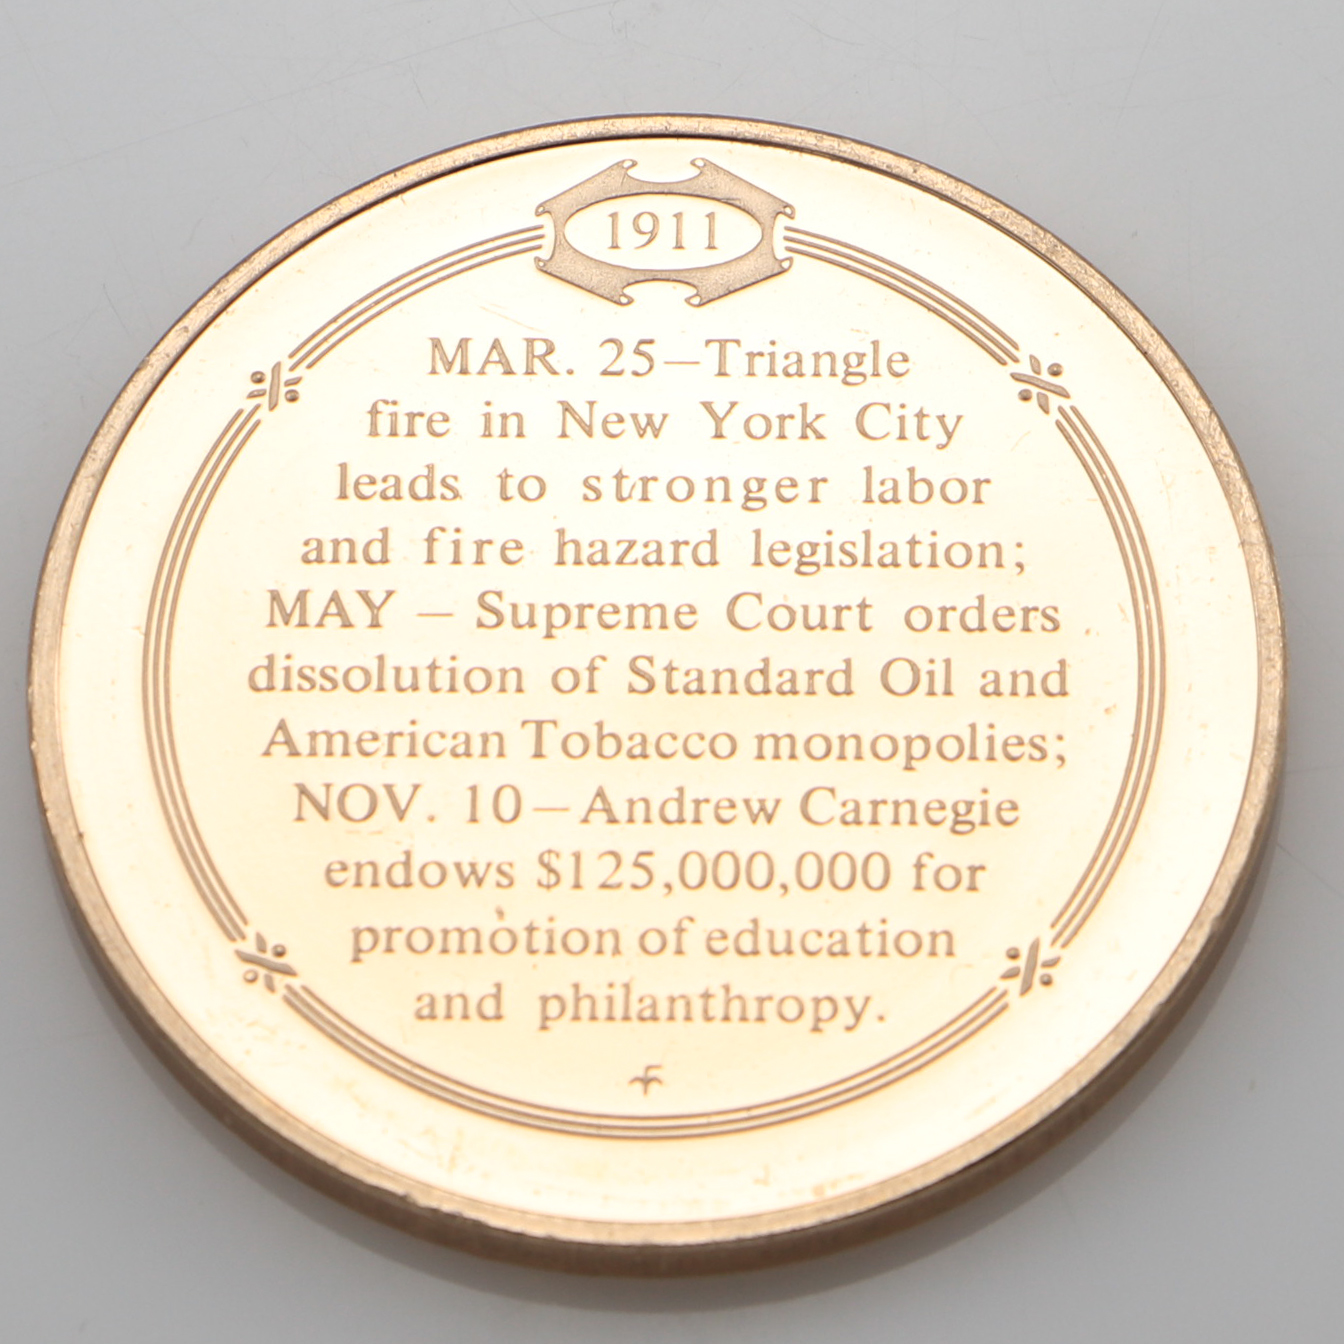 Details about Franklin Mint 1911 Andrew Carnegie Sparks Growth Of  Philanthropy Bronze Coin